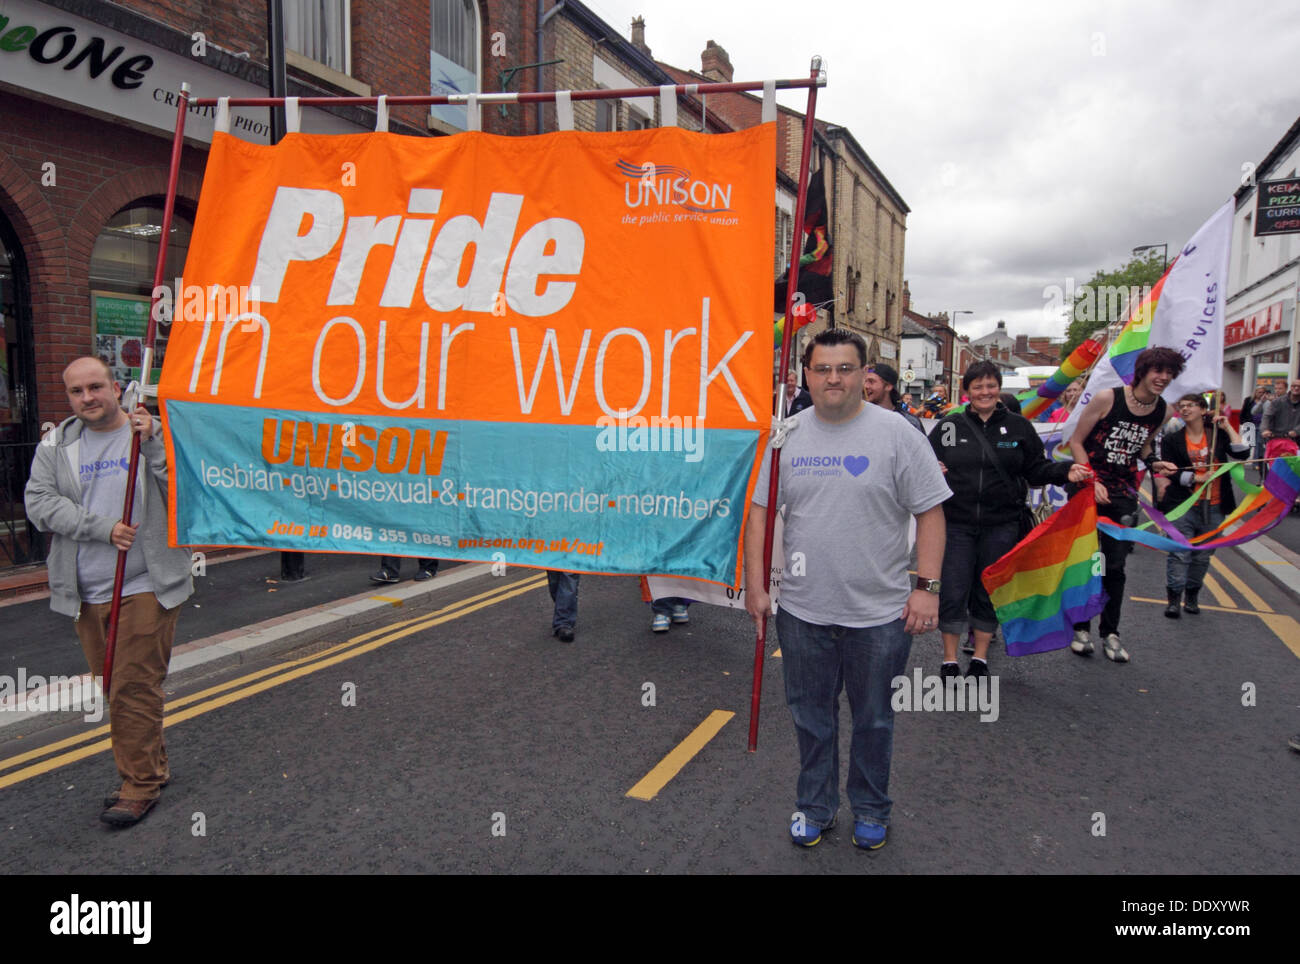 England,WA1,UK,GB,Great,britain,British,gay,lesbian,trans,transgender,LGBT,Bi,Bi-sexual,bisexual,people,men,women,marching,rights,WarringtonPride,march,marches,WBC,borough,council,unitary,local,authority,GGHT,golden,gates,housing,trust,events,celebrating,event,annual,yearly,flag,7th,seventh,gotonysmith,Warington,gayrights,Sep,Sept,Stonewall,town,demonstrate,demonstrators,demonstrator,Liberation,Front,GLF,gayness,gayboy,boy,boys,girls,girl,population,world,worldpride,Canal,St,street,rugby,player,players,team,cup,rugbyworldcup,07/09/2013,09/07/2013,Rylands,Palmyra,Sq,square,Bond,Bridge,WarringtonLGBT,LGBTWarrington,members,volunteers,stigma,services,service,HIV,aids,sexuality,sex,lgbtwarrington.co.uk,WA1,1JL,WA11JL,Unison,banner orange blue teal,Pride in Our Work,Buy Pictures of,Buy Images Of